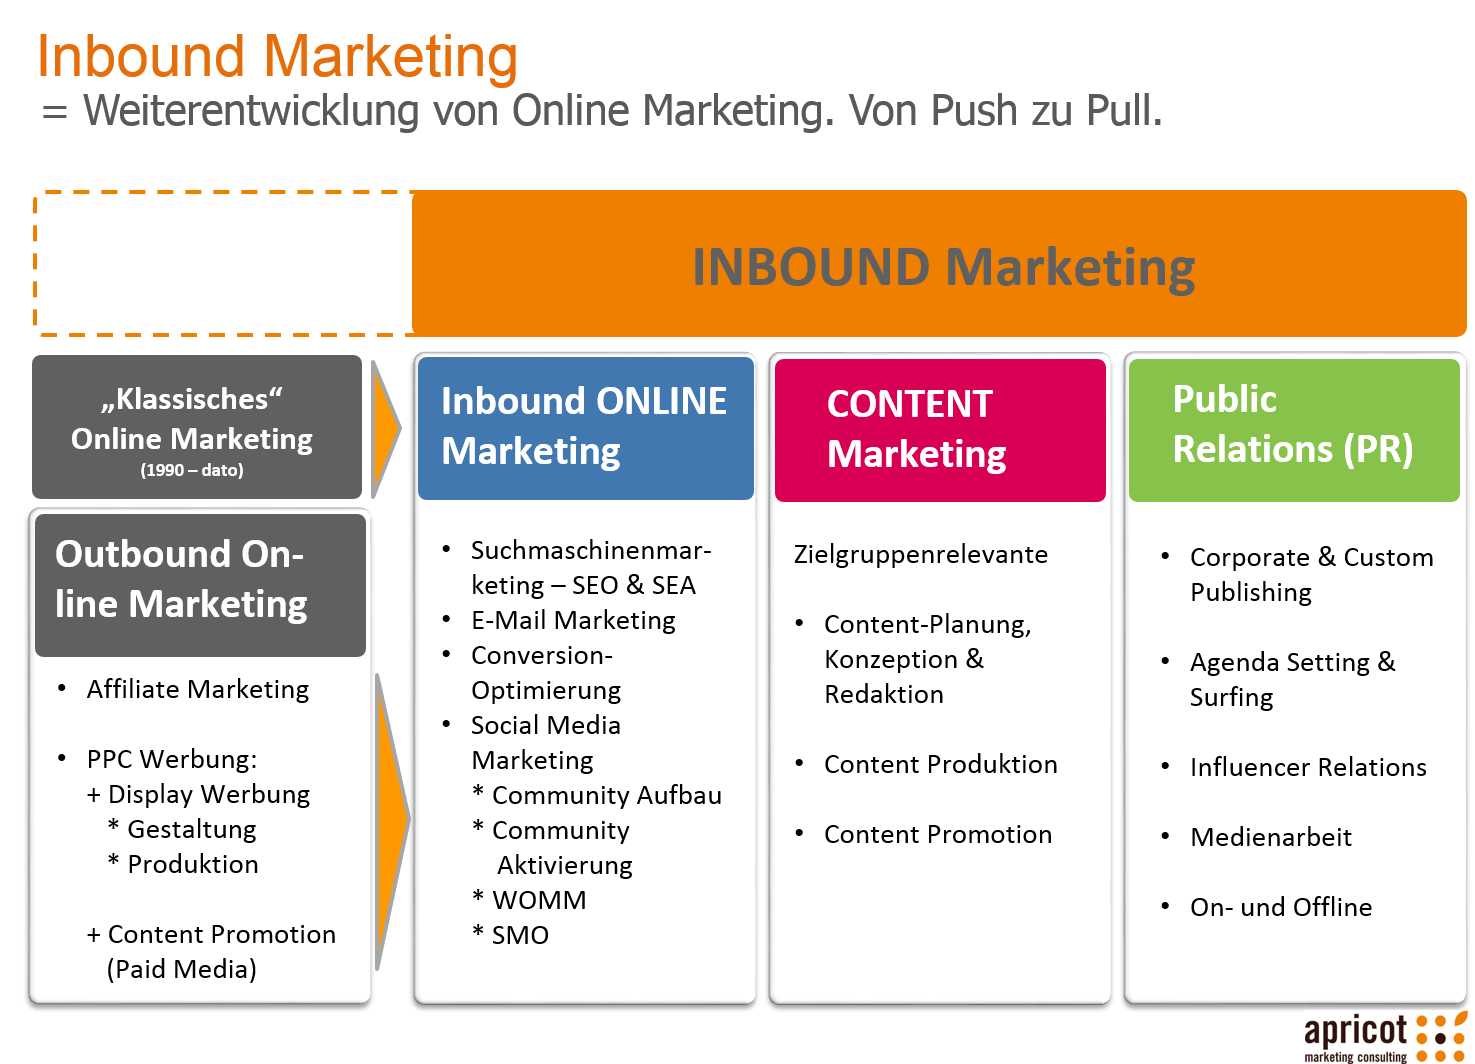 Inbound Marketing_apricot marketing consulting.png